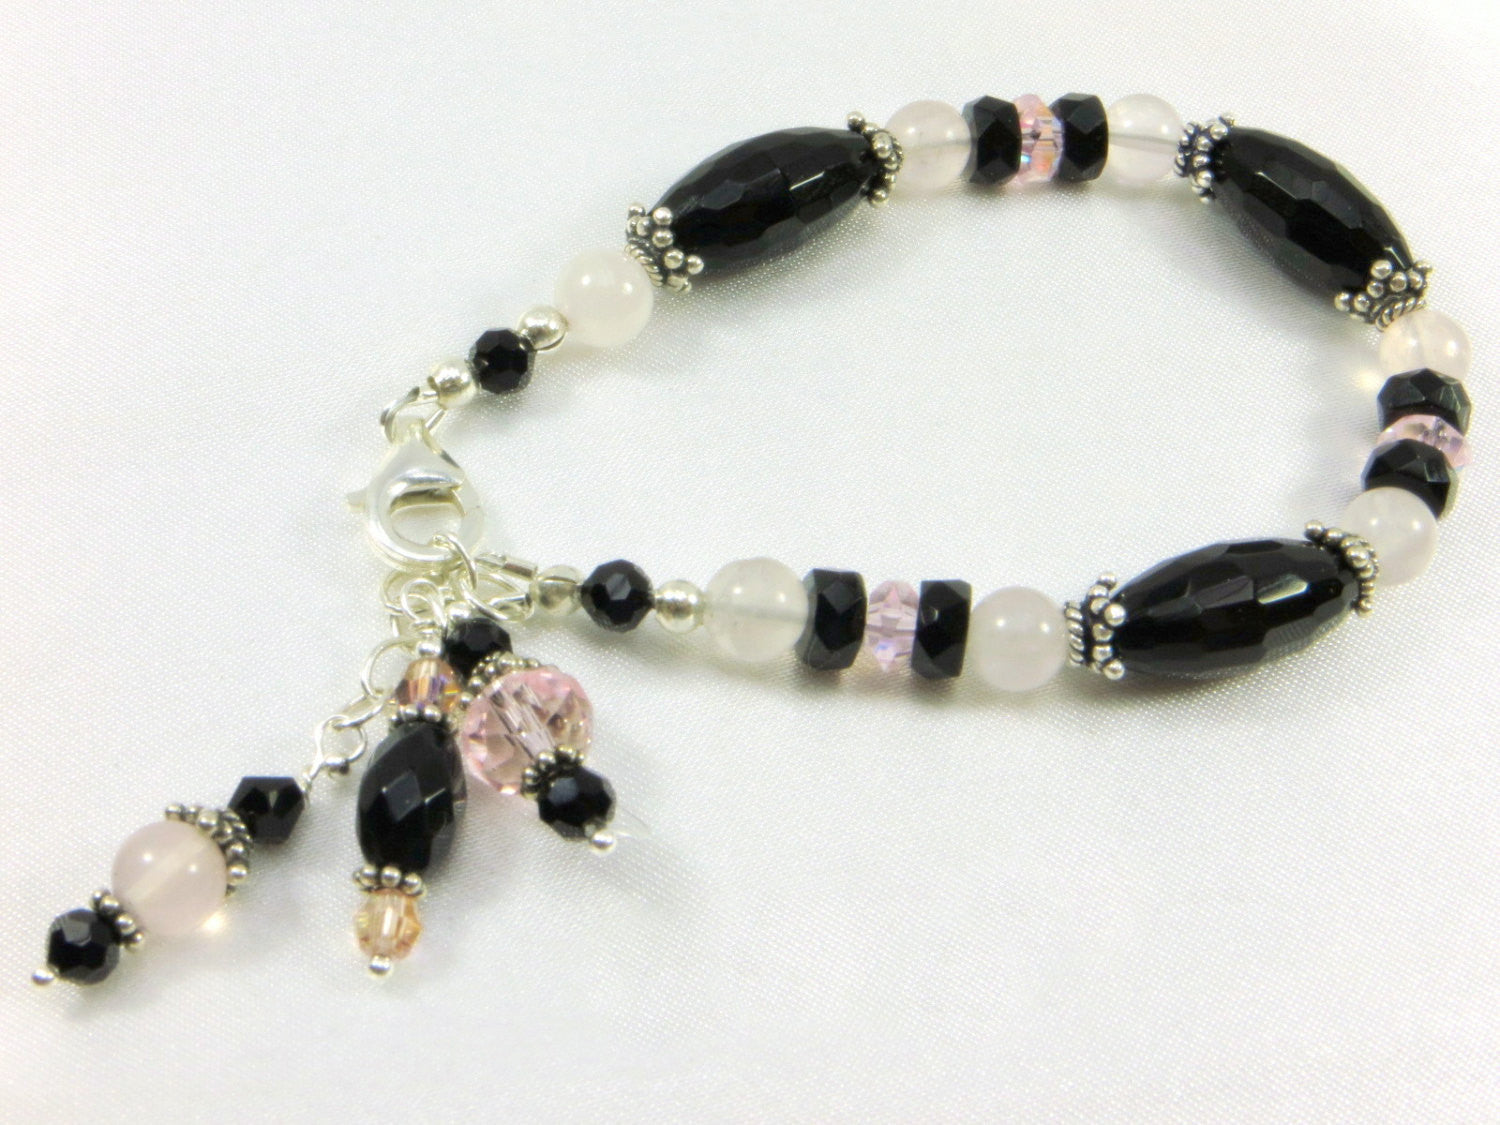 SALE - Pink Rose Quartz and Black Onyx Semiprecious Ston on all Sterling Silver Bracelet with charms - Odyssey Creations